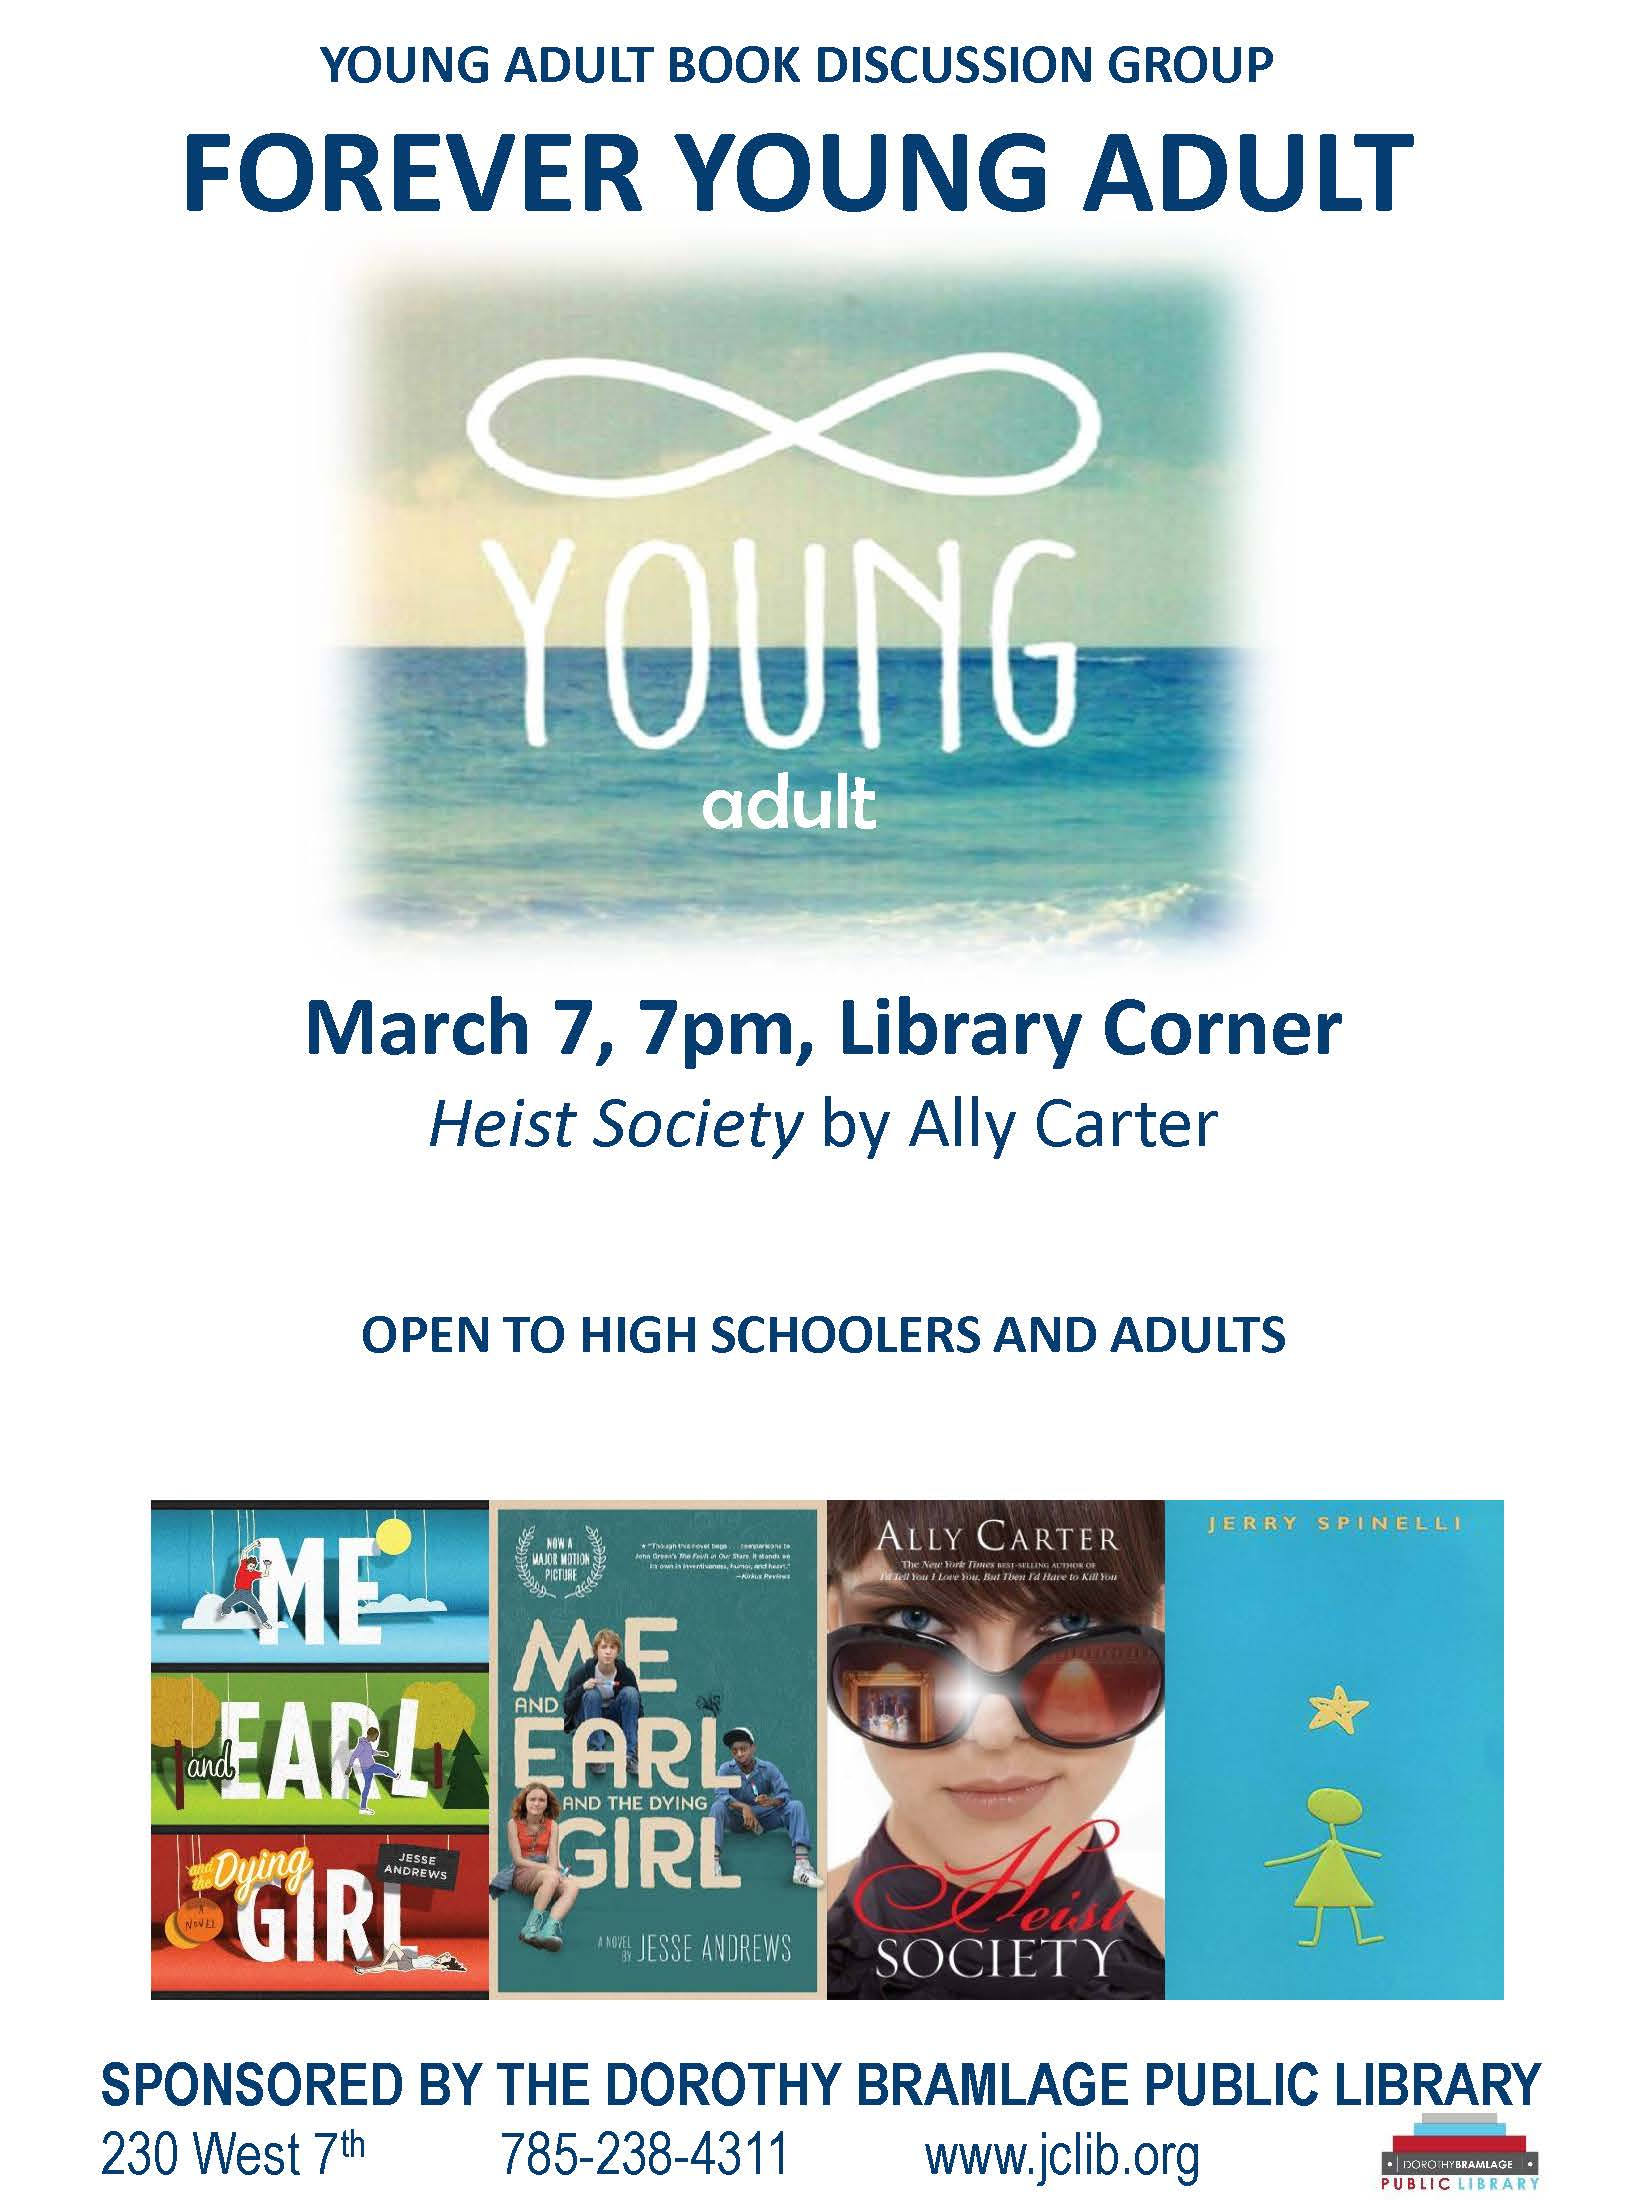 Forever Young Adult Book Discussion Group Flyer